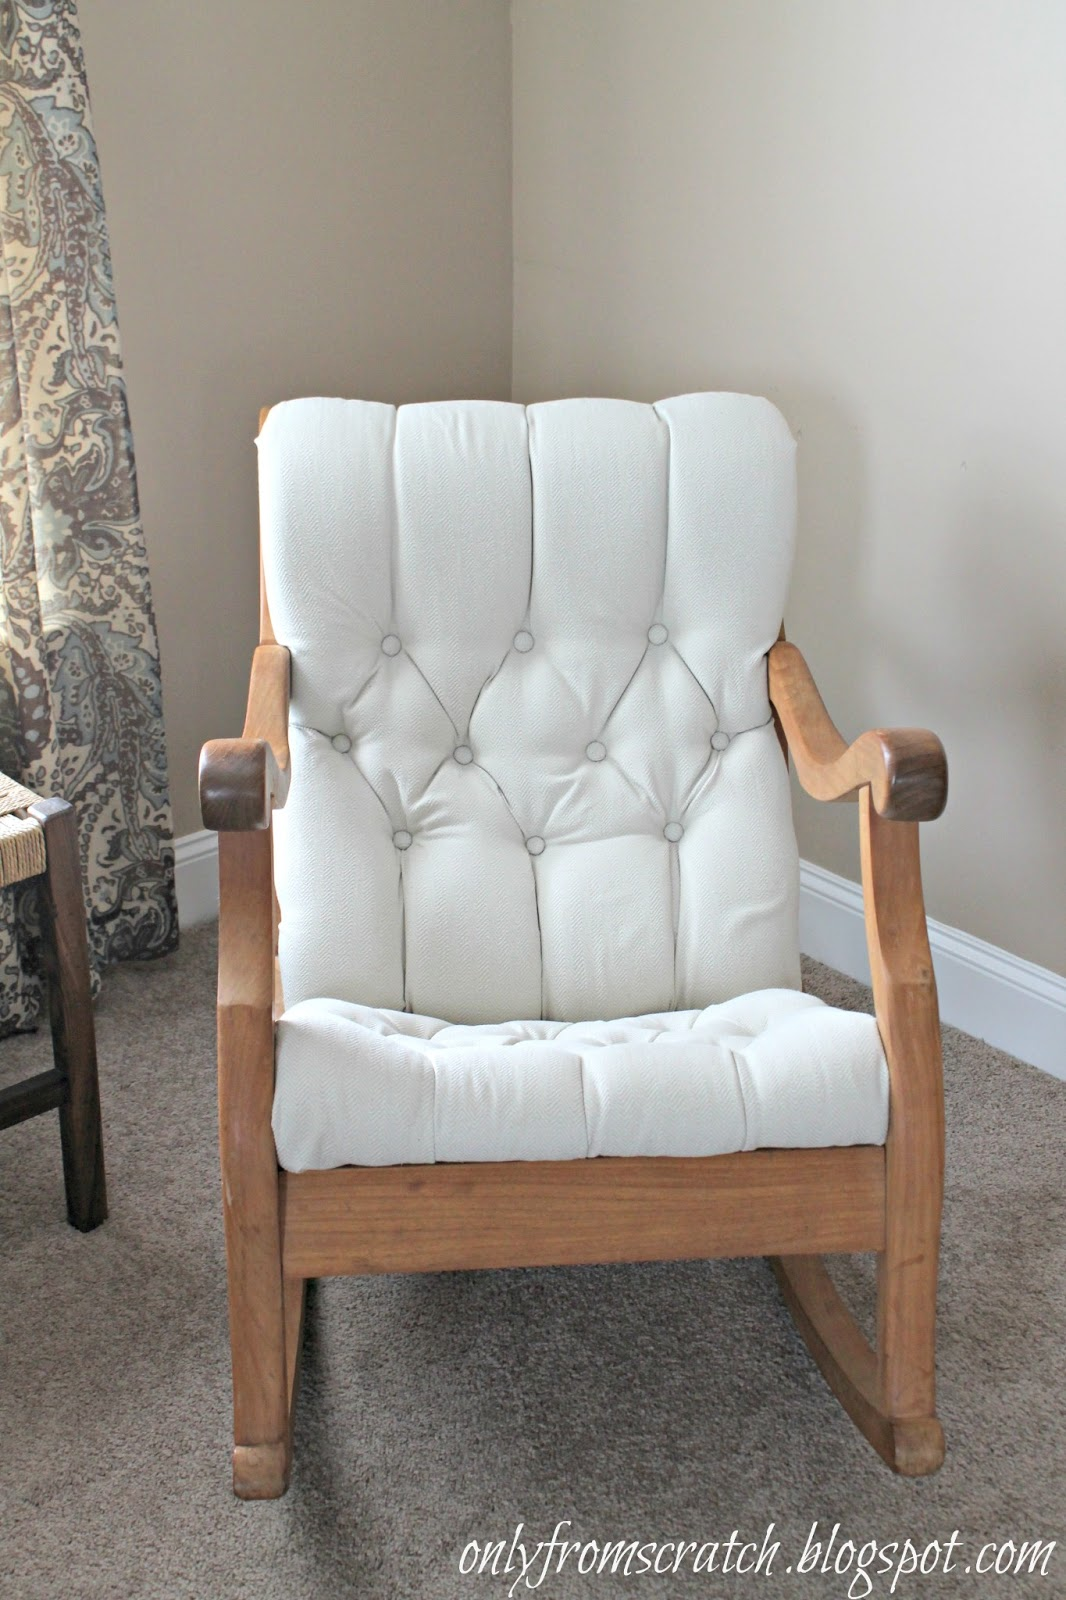 Only From Scratch: Tufted Rocking Chair Re-do